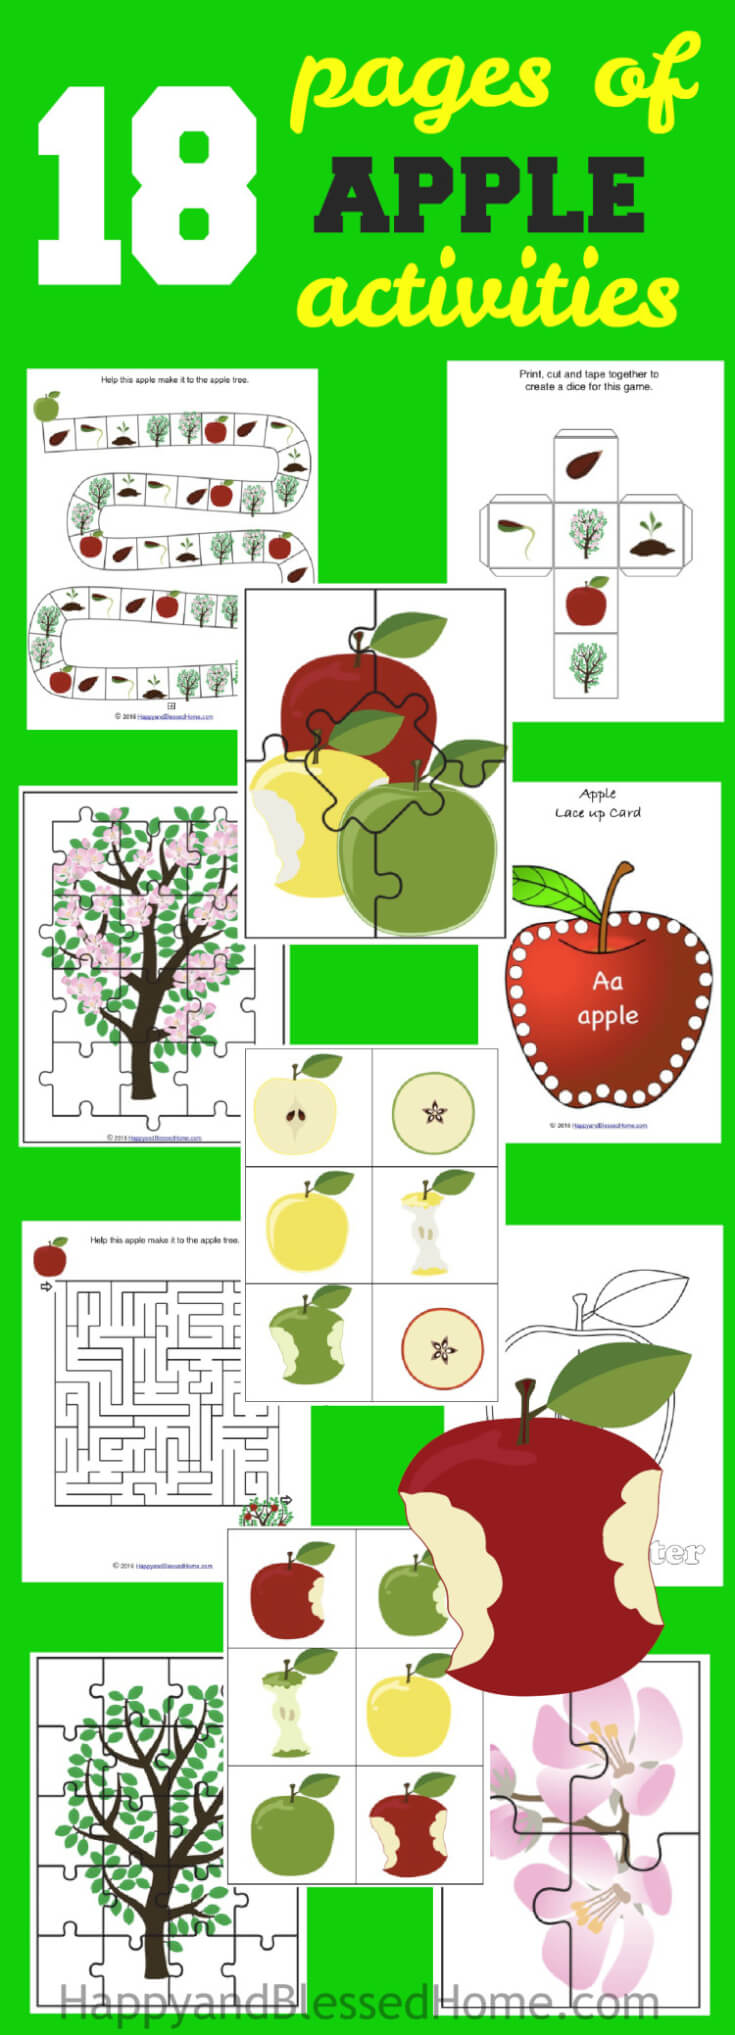 18-pages-of-apple-activities-for-kids-puzzles-coloring-and-more